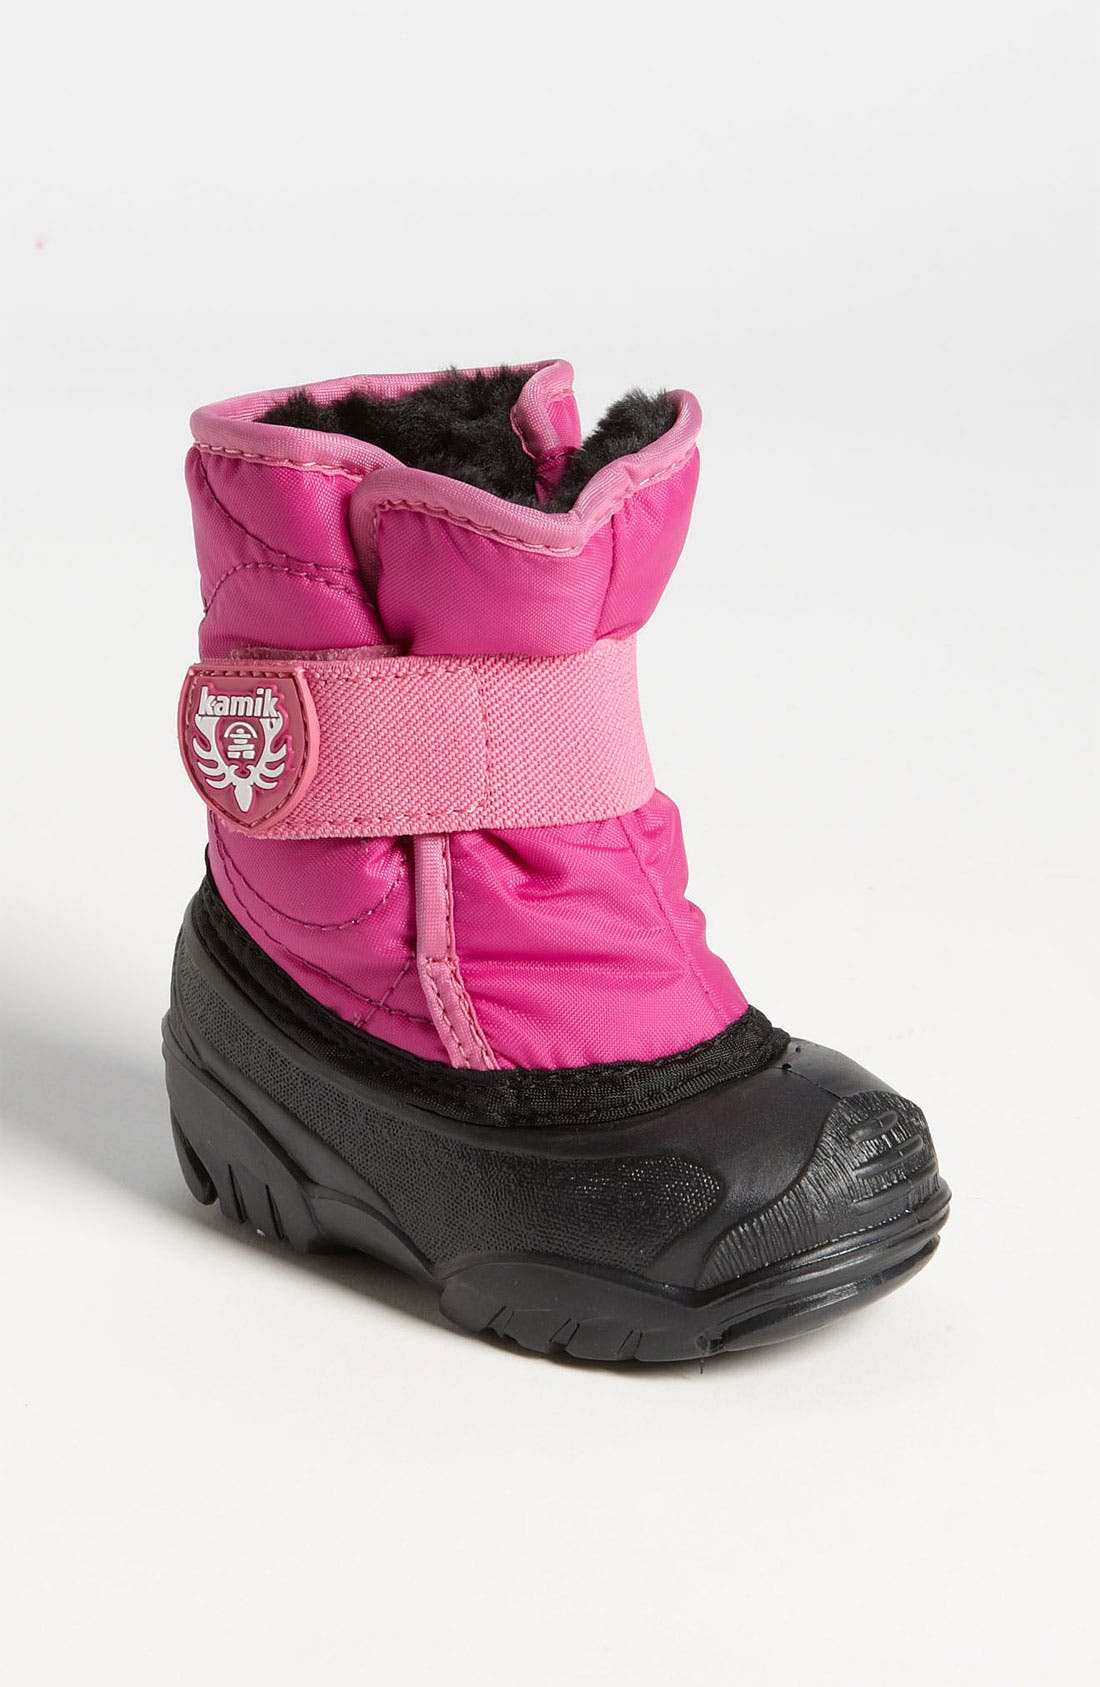 Alternate Image 1 Selected - Kamik 'Snowbug' Waterproof Boot (Walker & Toddler)